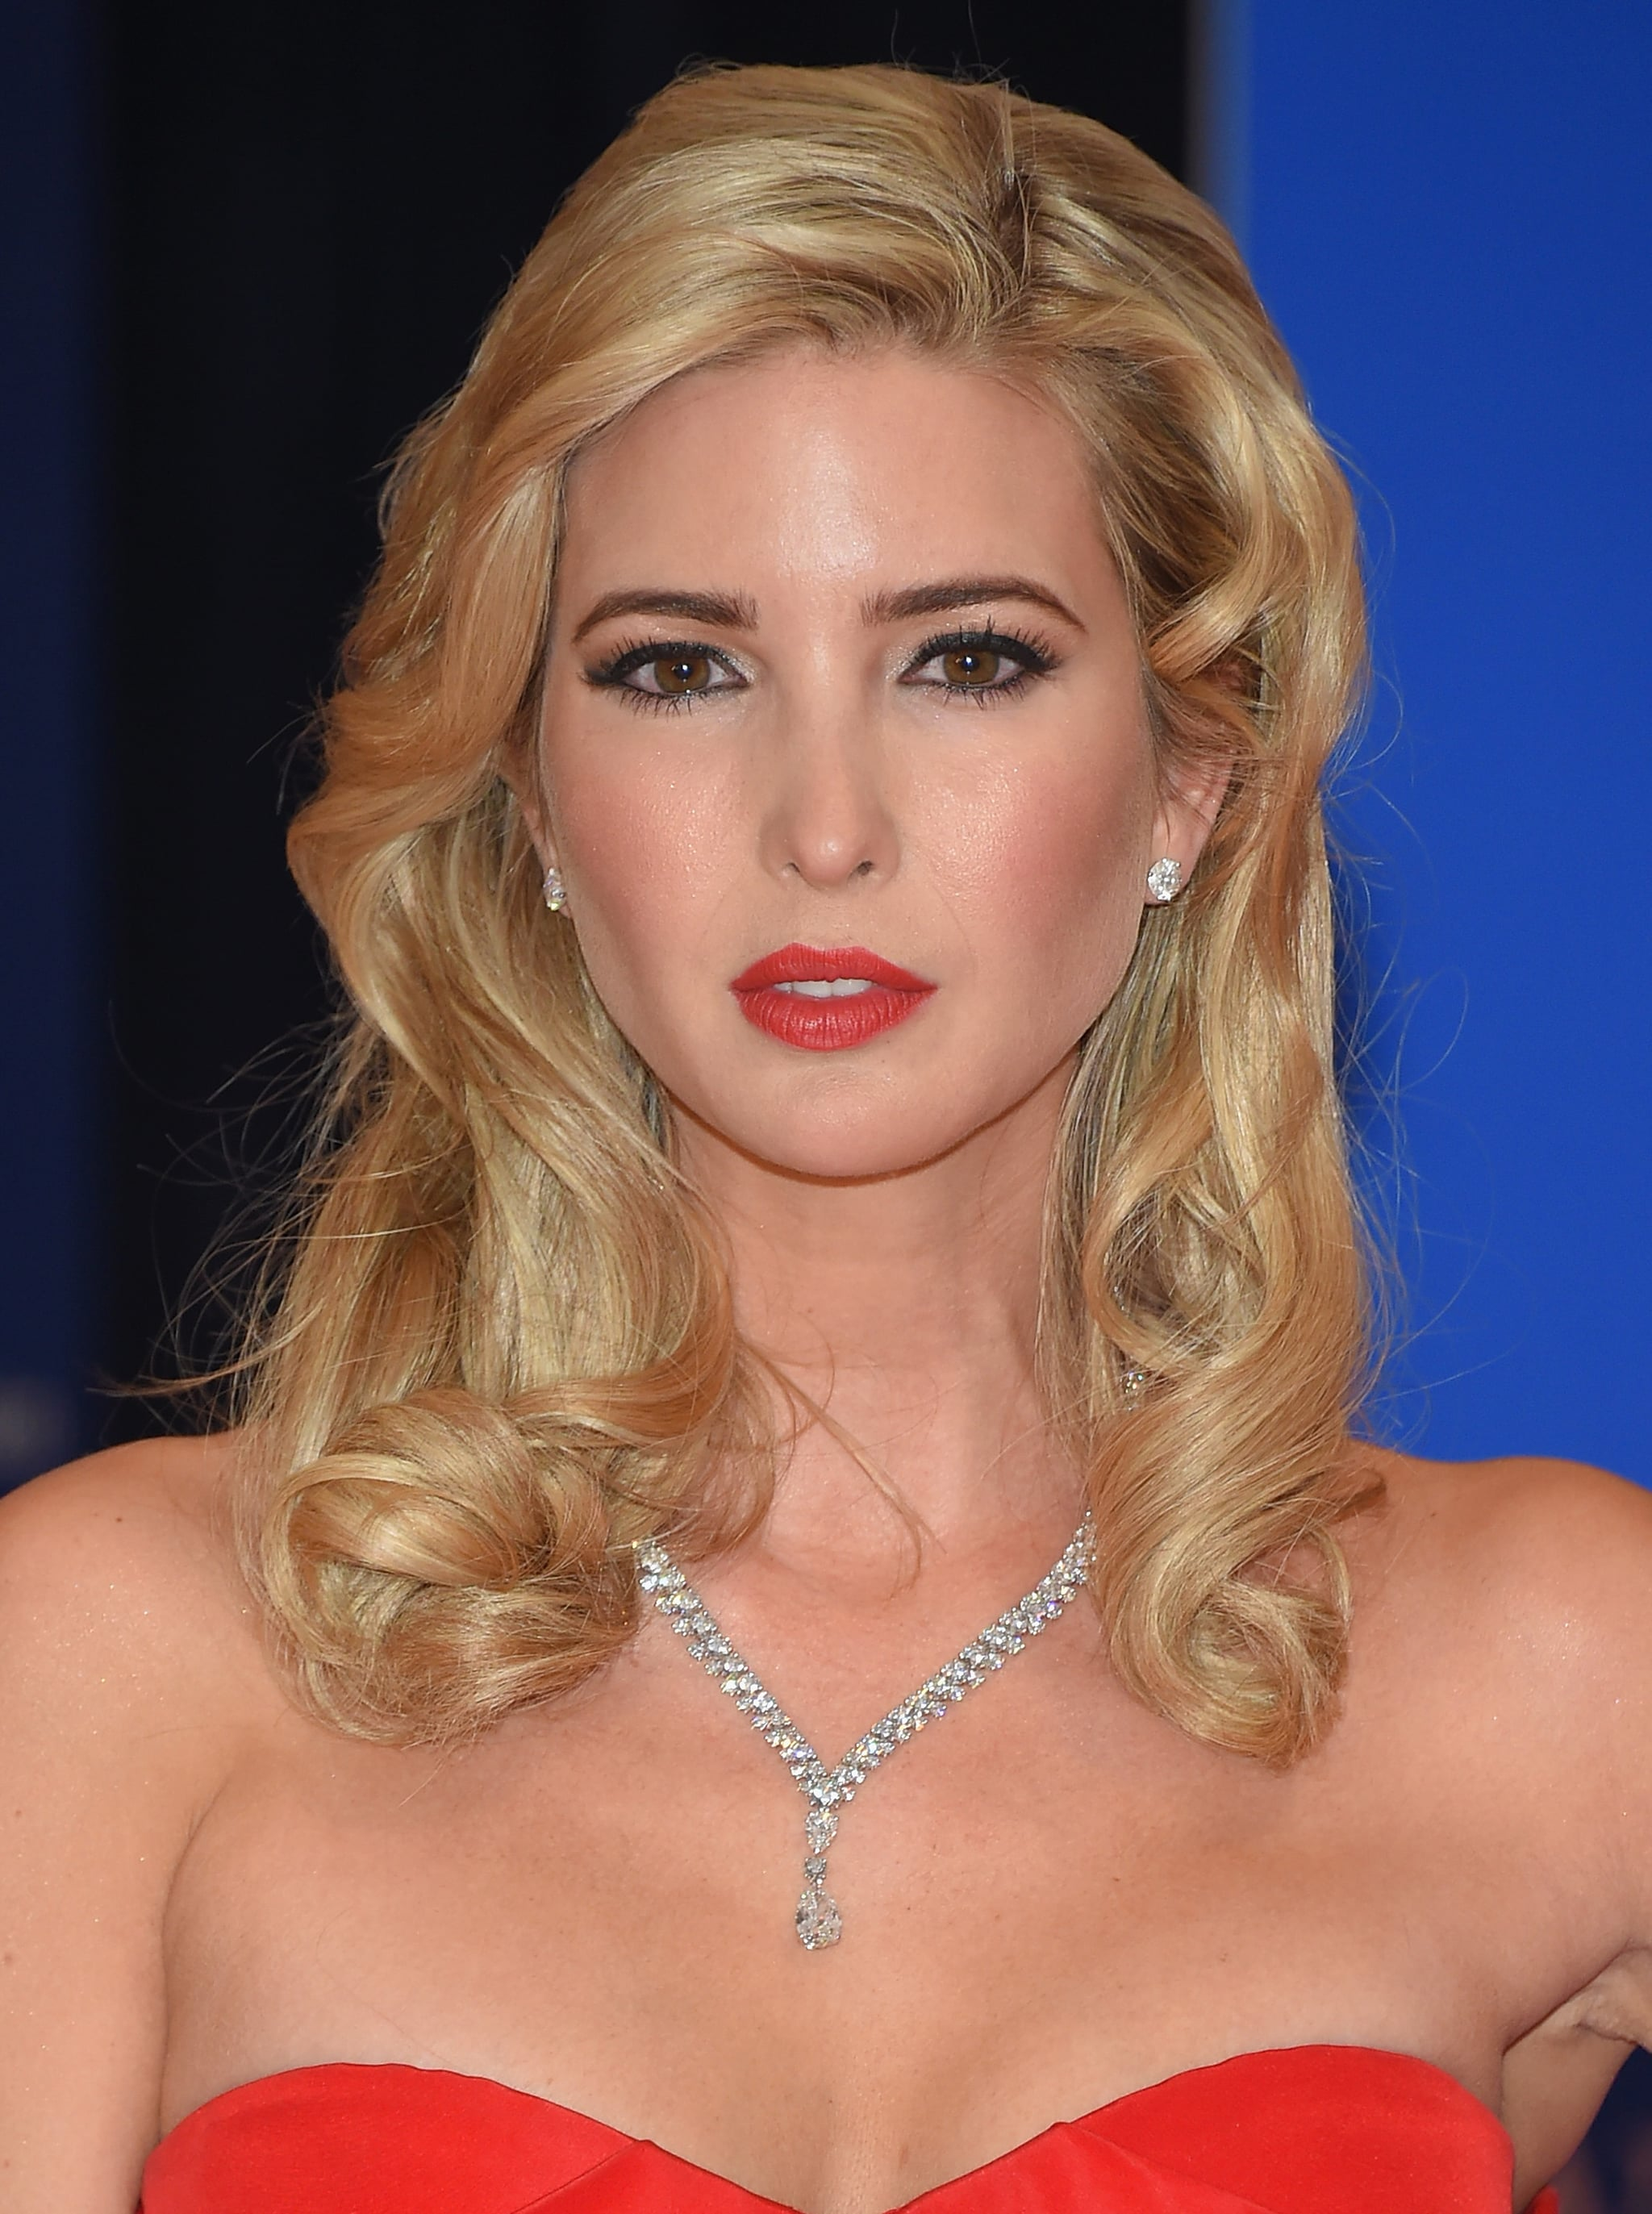 Ivanka Trump Perfume Top Amazon Seller Popsugar Beauty